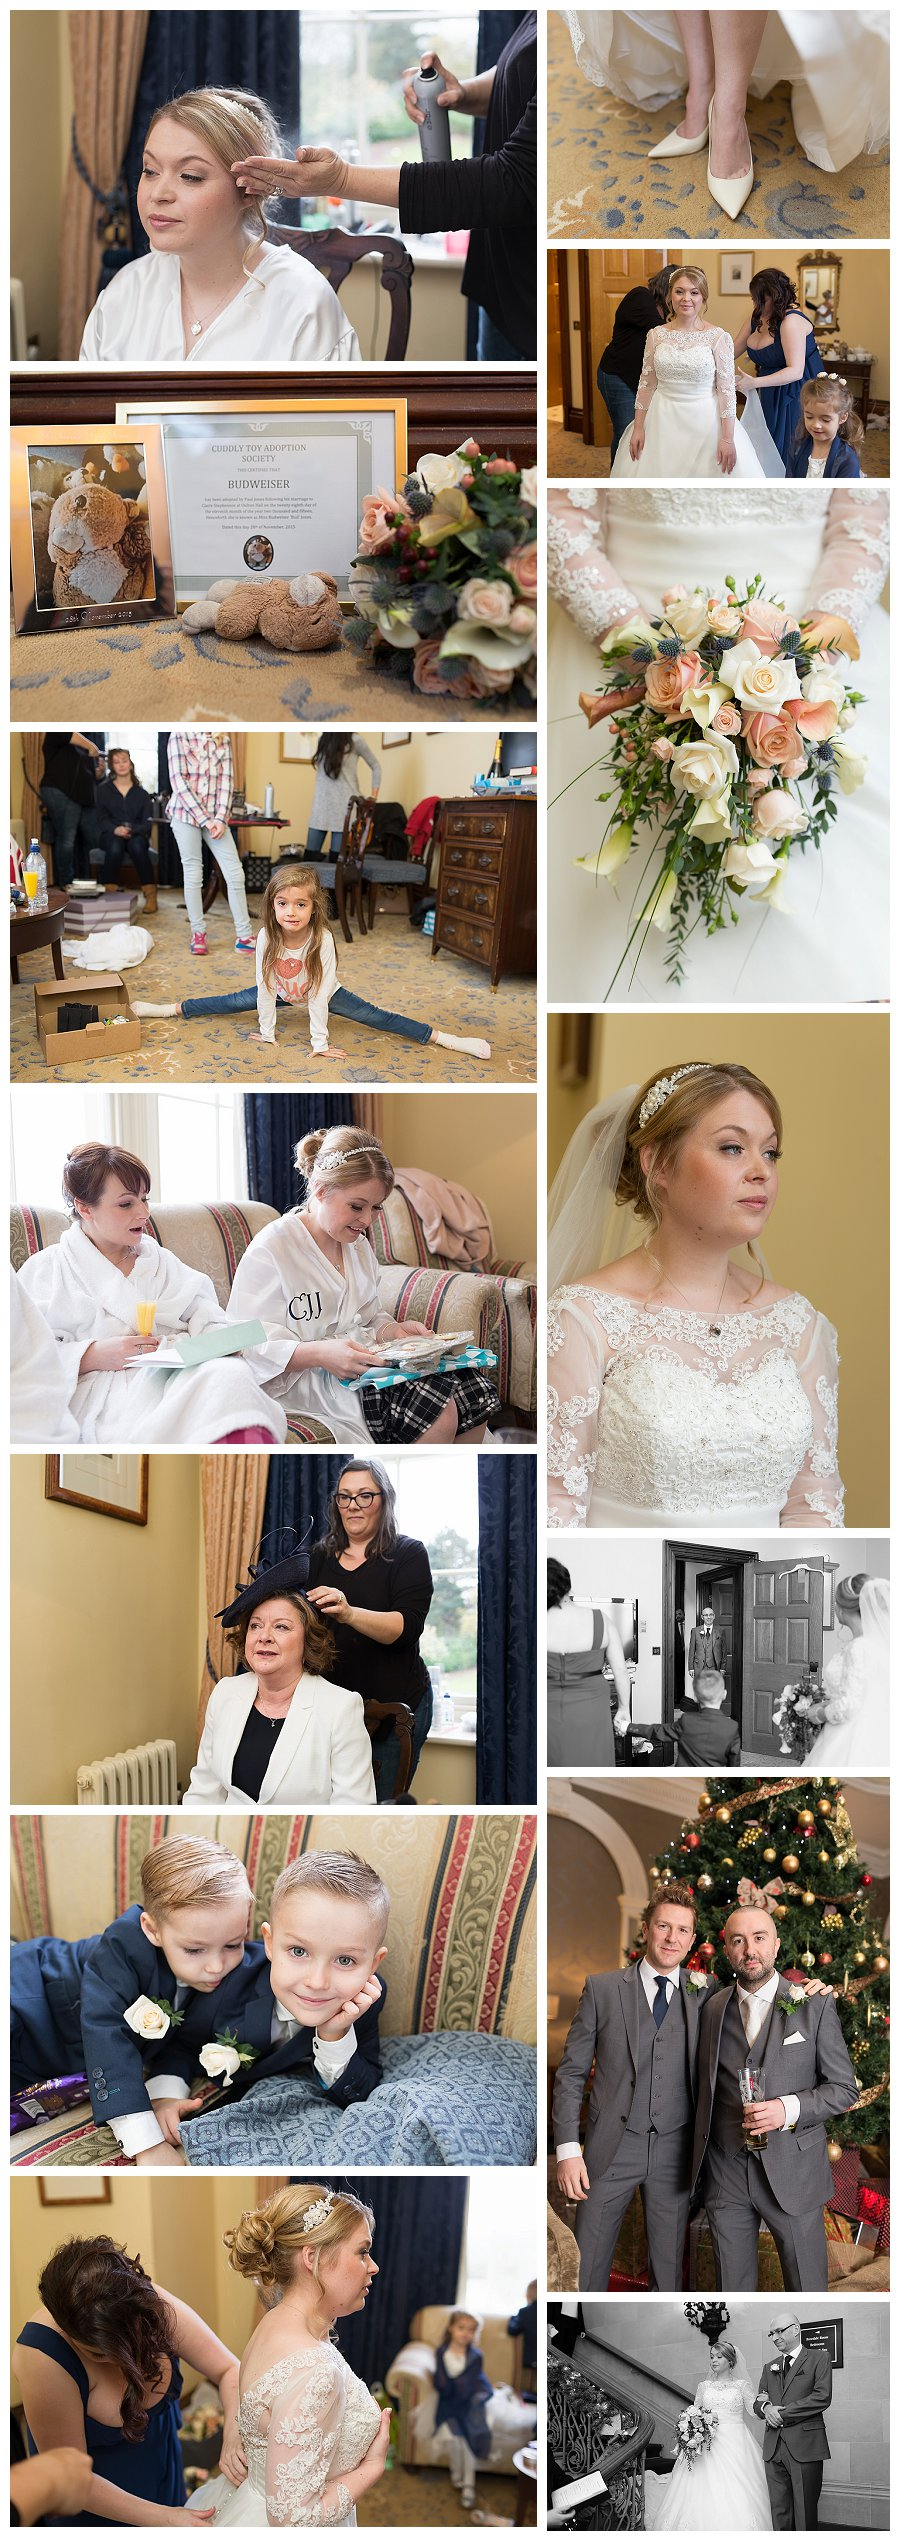 Wedding photographer Oulton Hall Leeds, Oulton hall wedding photographers,